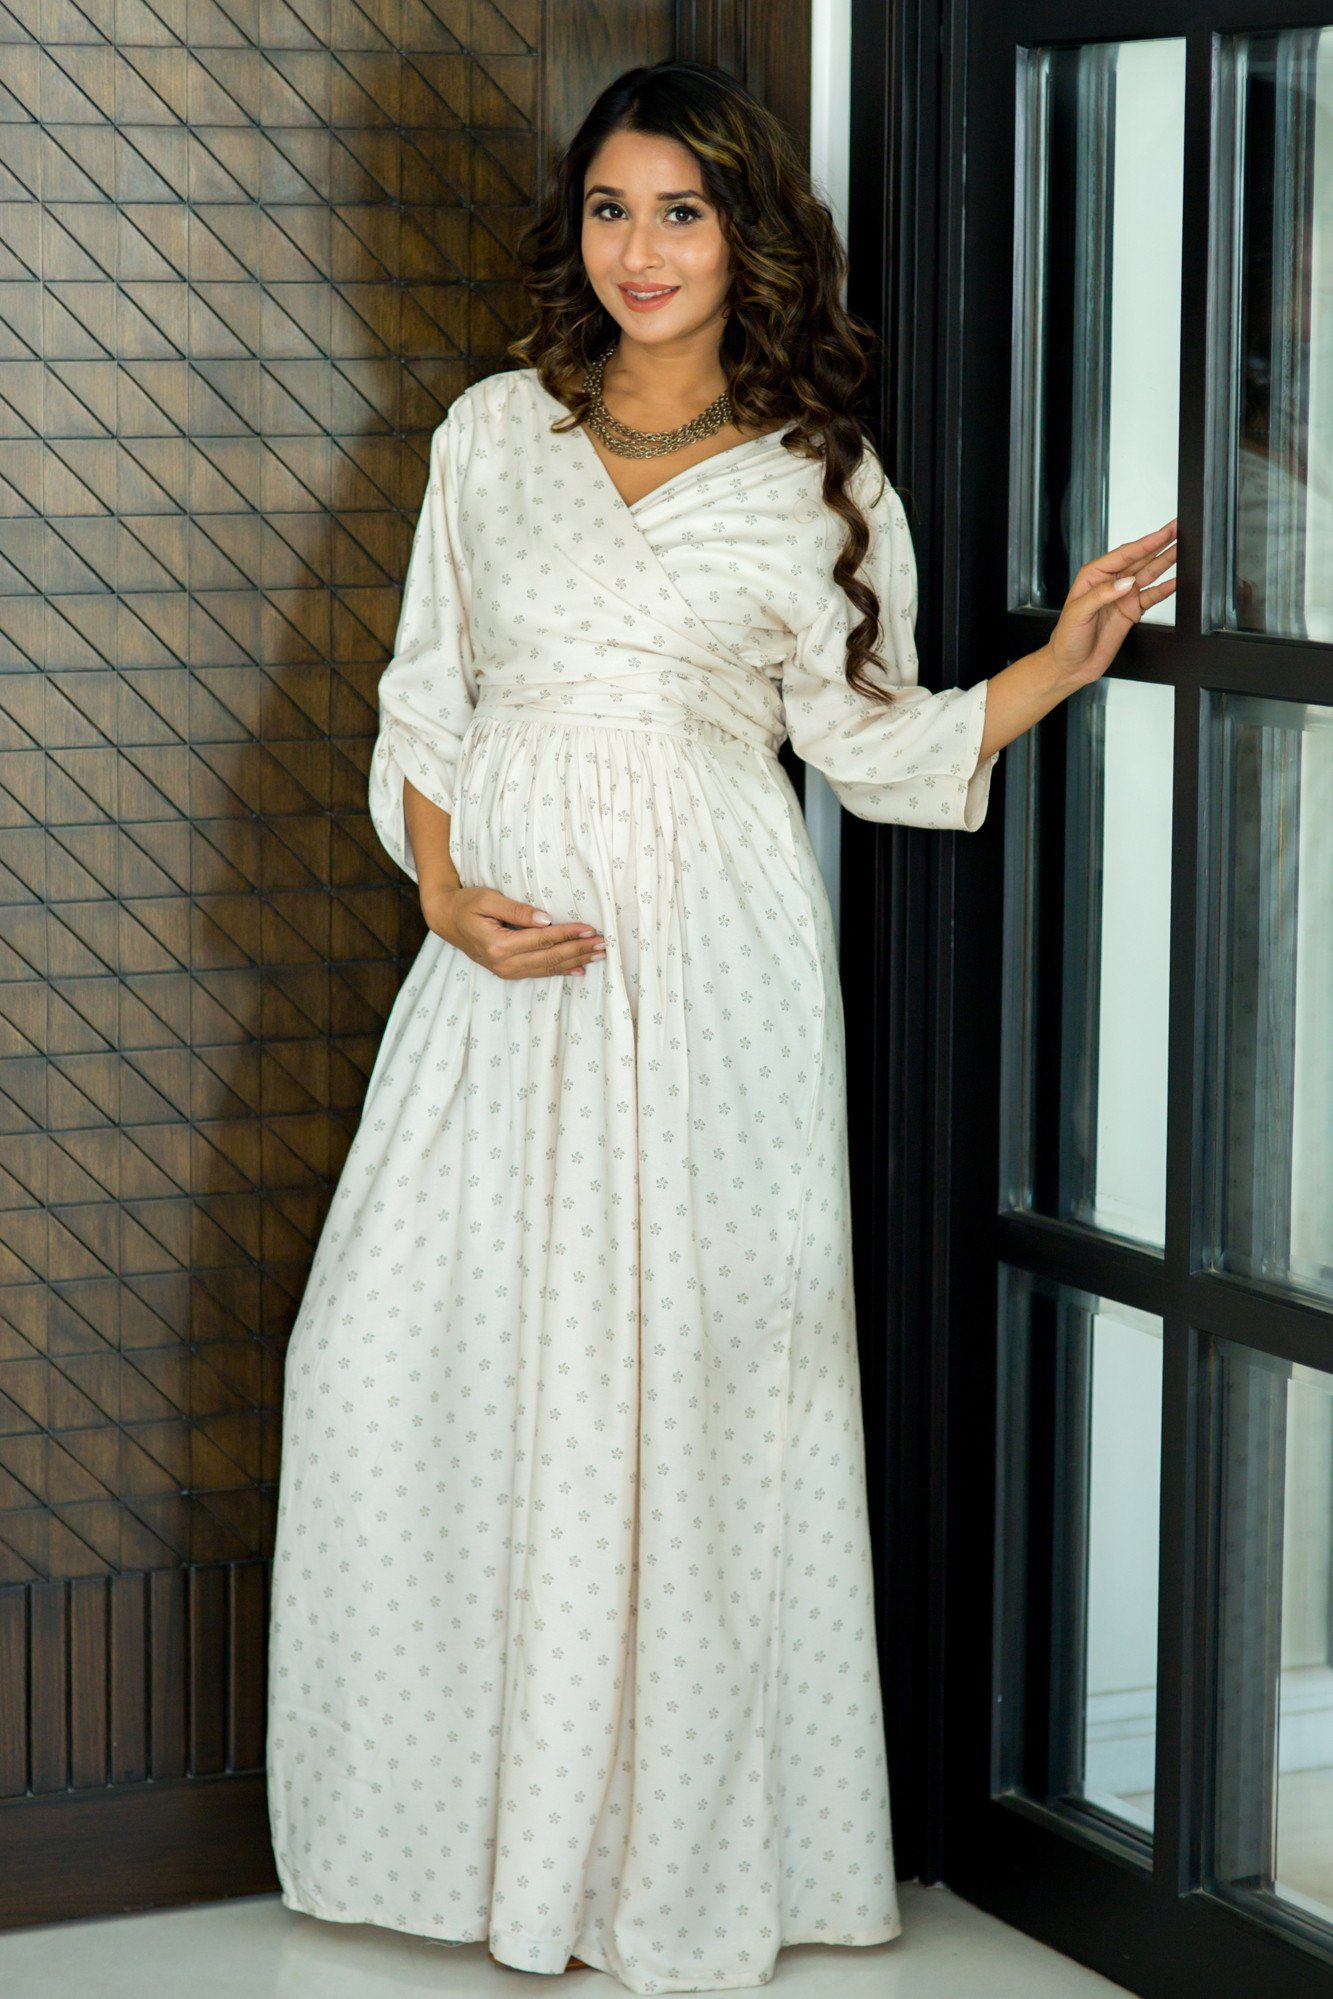 Serene Off White Maternity & Nursing Wrap Dress